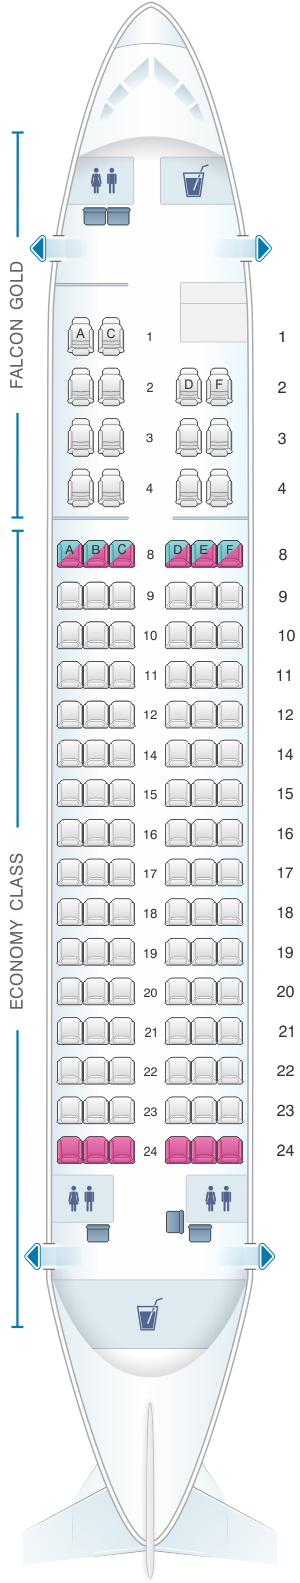 Seat map for Gulf Air Airbus A320 ER